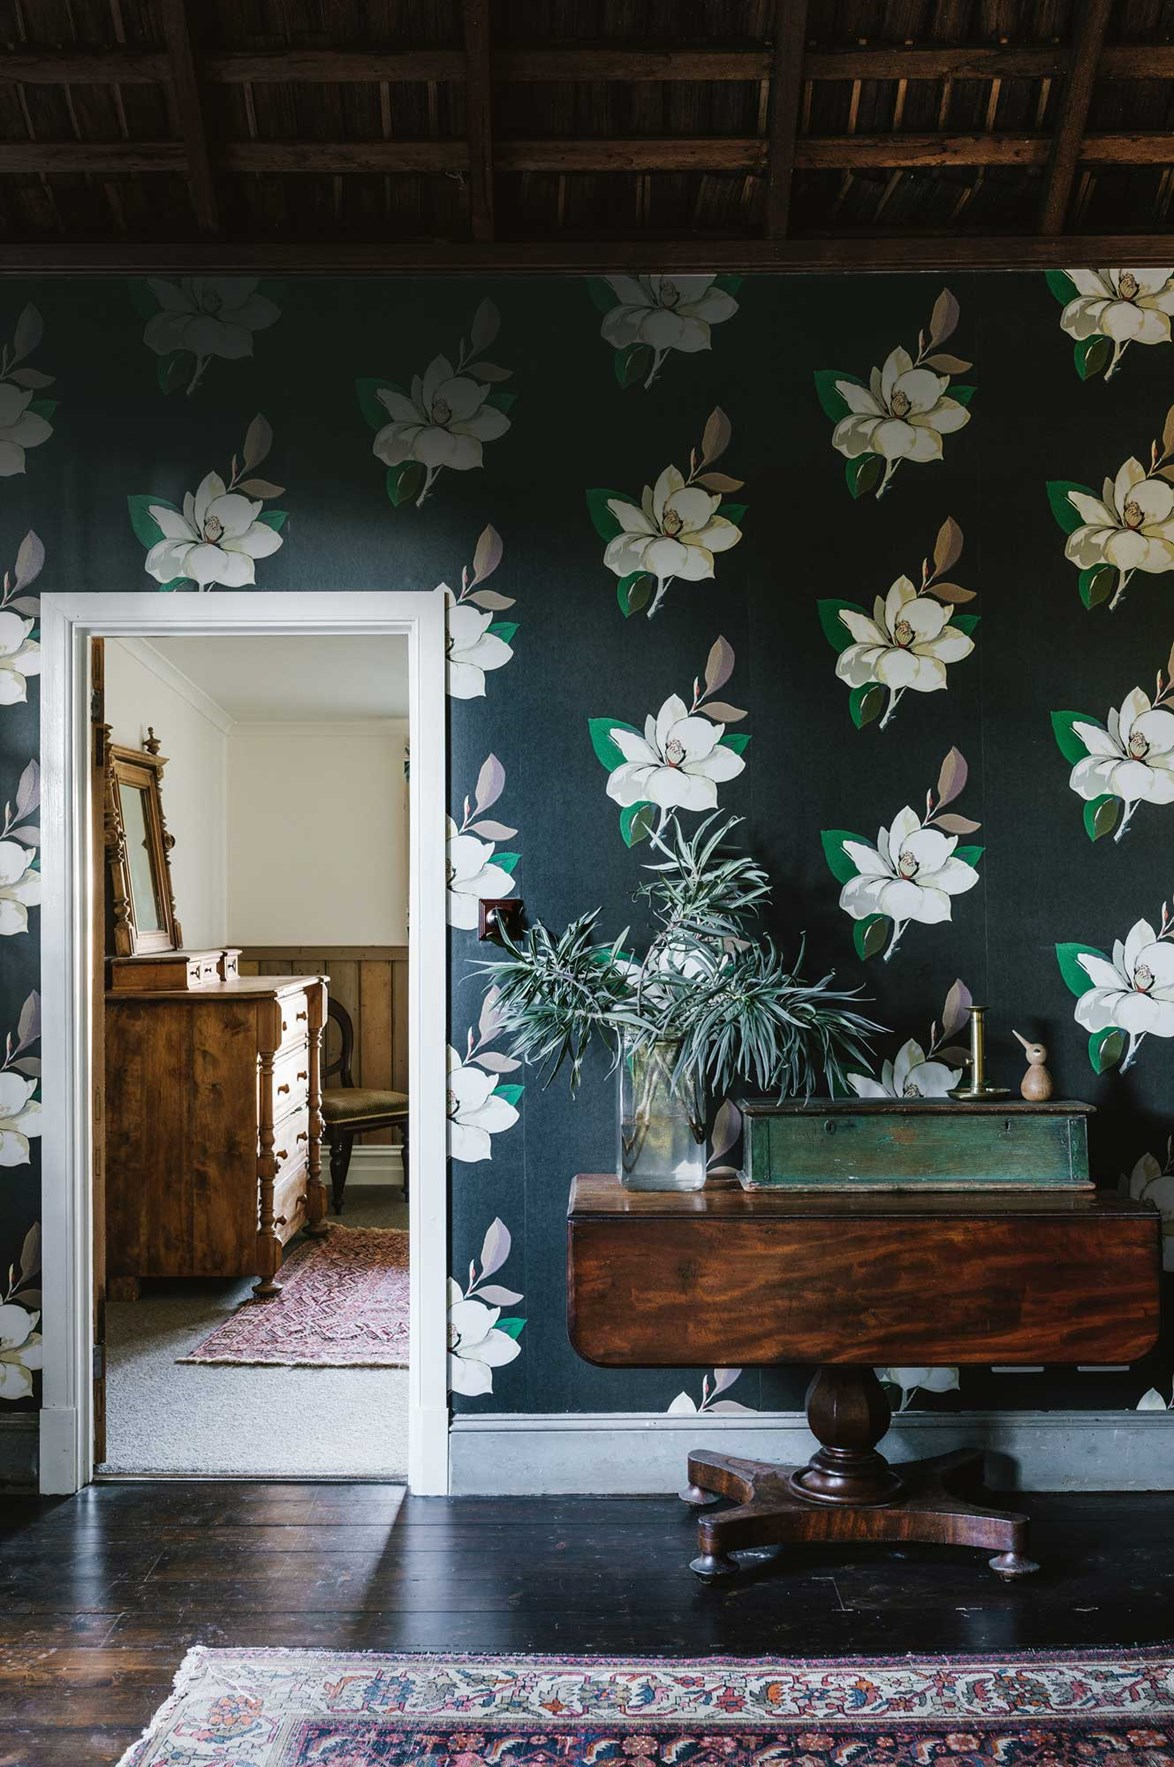 """Wallpaper is a brilliant way to add colour to a room. When a creative couple restored began work on an [old guesthouse](https://www.homestolove.com.au/old-farmhouse-restoration-13852